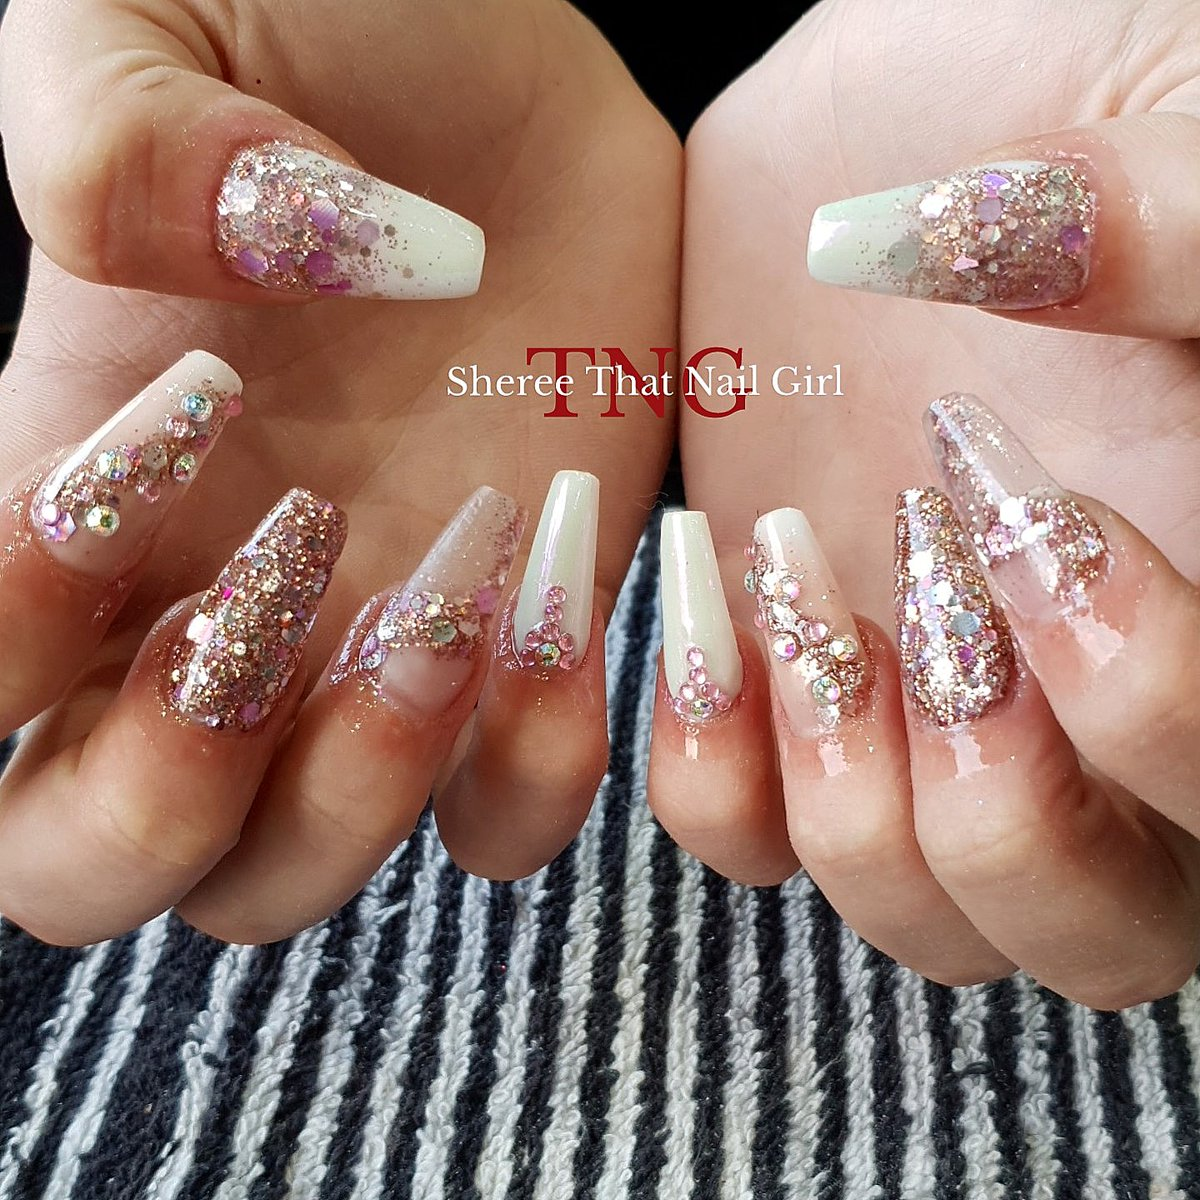 Rose gold   Products from @bluesky_global @blueskyukpro @onelovenailz and #thatnailgirl  #acrylicnails #sculptednails #rosegold #rosegoldnails #glitternails #glitter #coffinnails #thatnailgirlstage2 #thatnailgirlsheree #nailsindoncaster #doncasternails #doncaster #nails #nailpic.twitter.com/MVeXRBkRX4